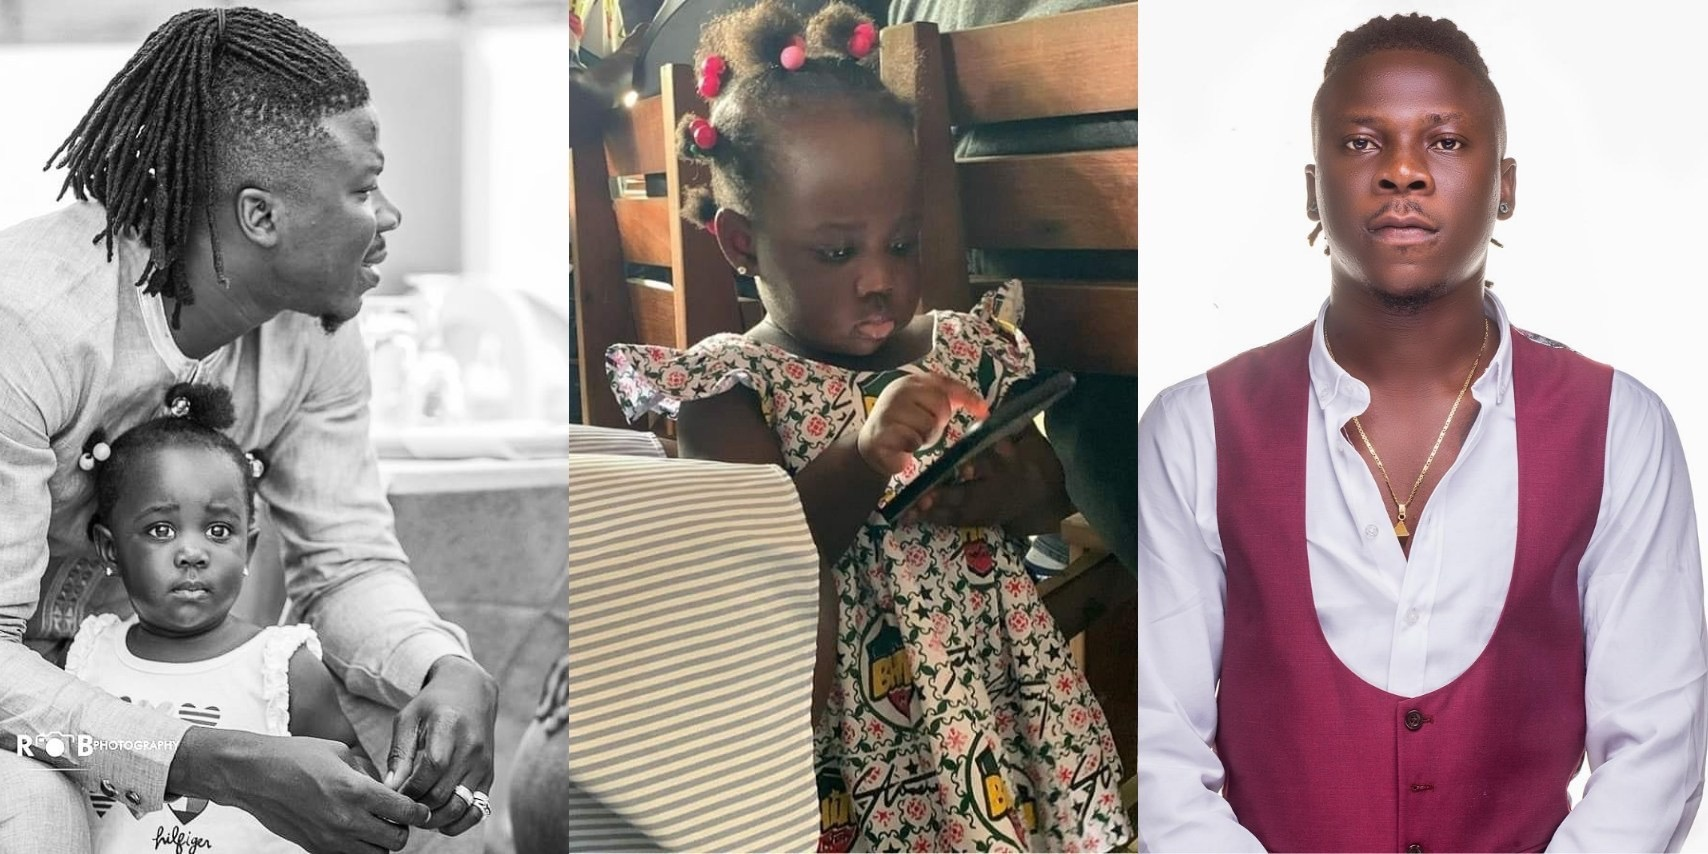 Stonebwoy's daughter joins 'putuu' craze Challenge